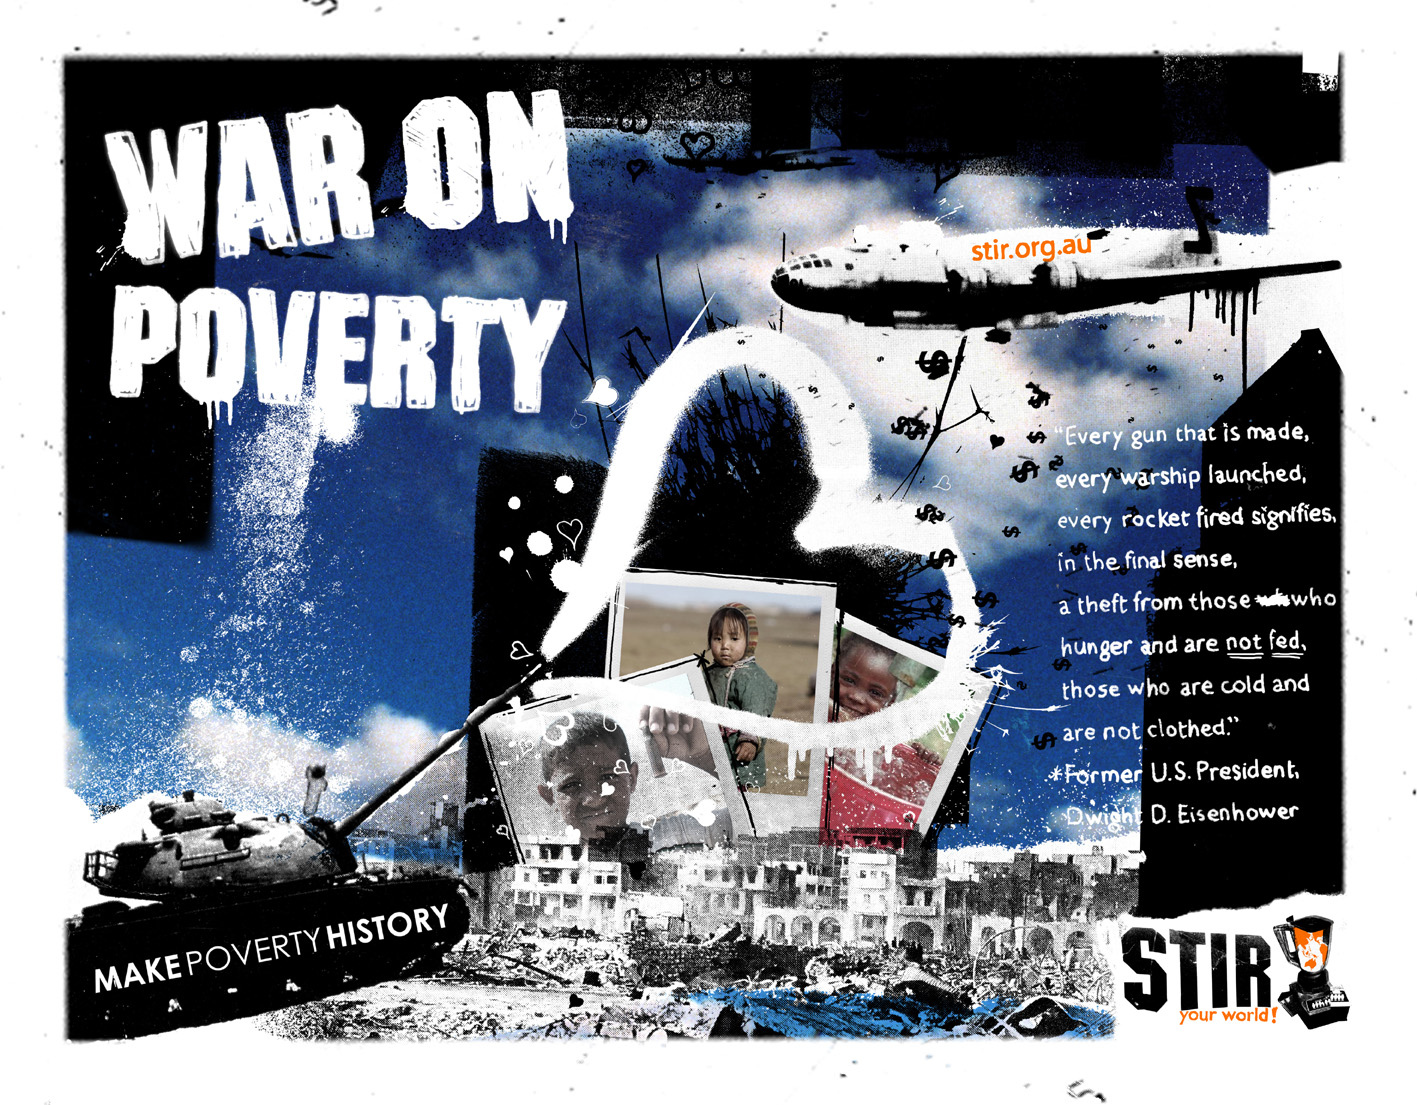 War-On-Poverty-Wallpaper-Poster